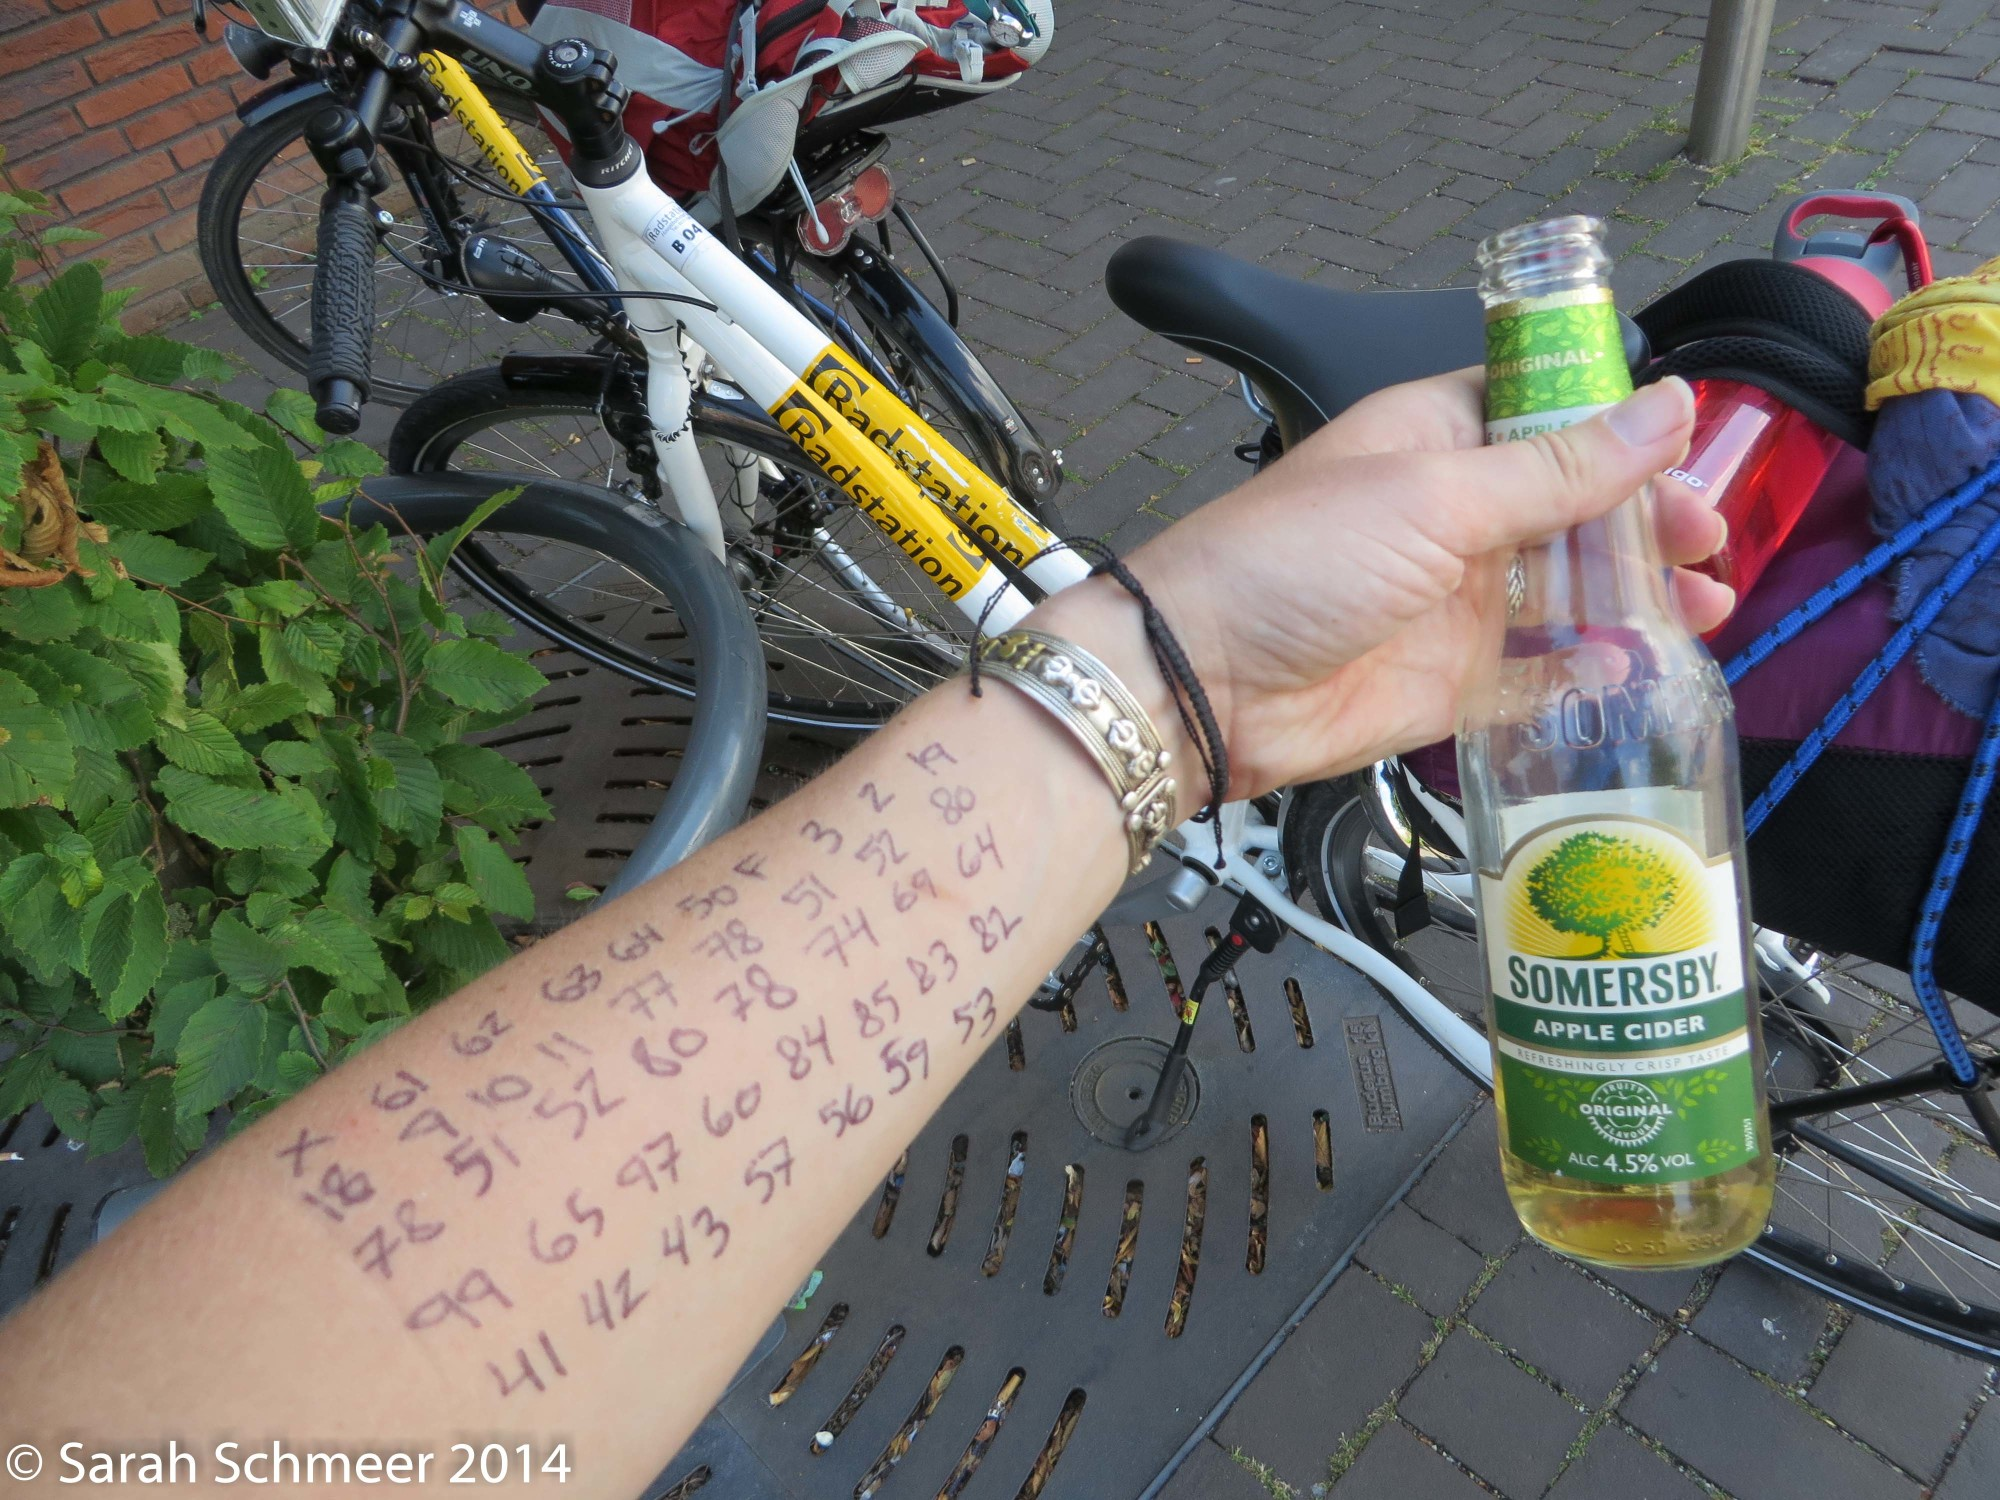 Numerical directions from Rotterdam to 's-Hertgenbosch (picture taken during a lunch break, hence the cider!)